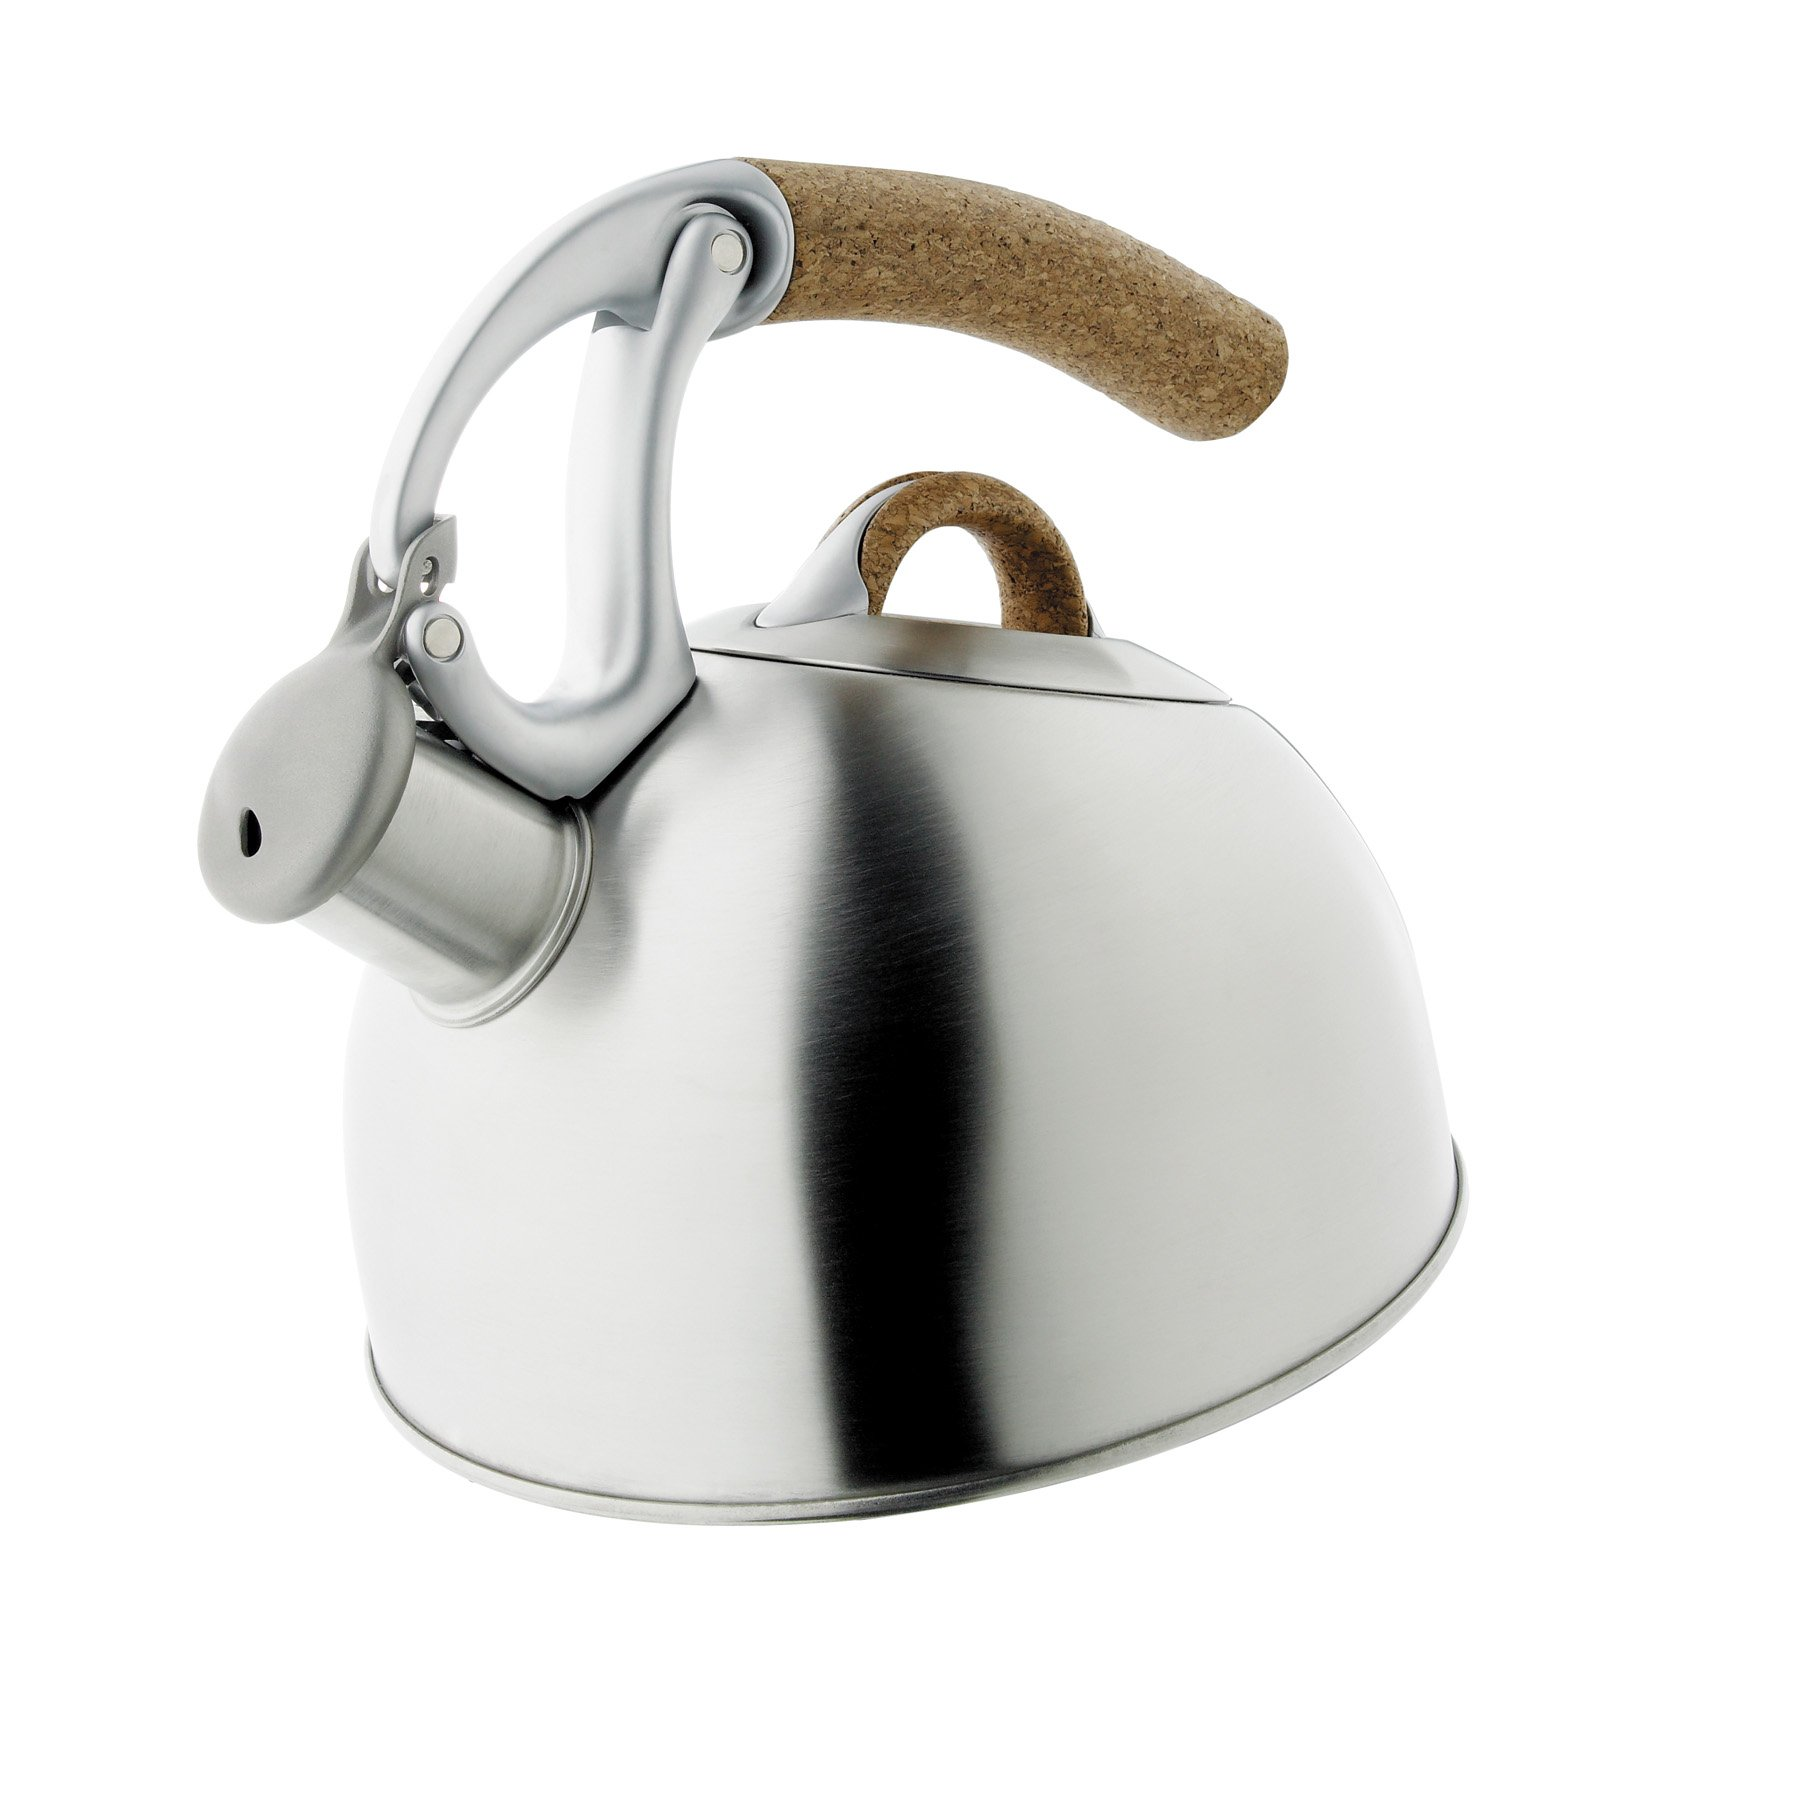 OXO BREW Anniversary Edition Uplift Tea Kettle, Brushed Stainless Steel by OXO